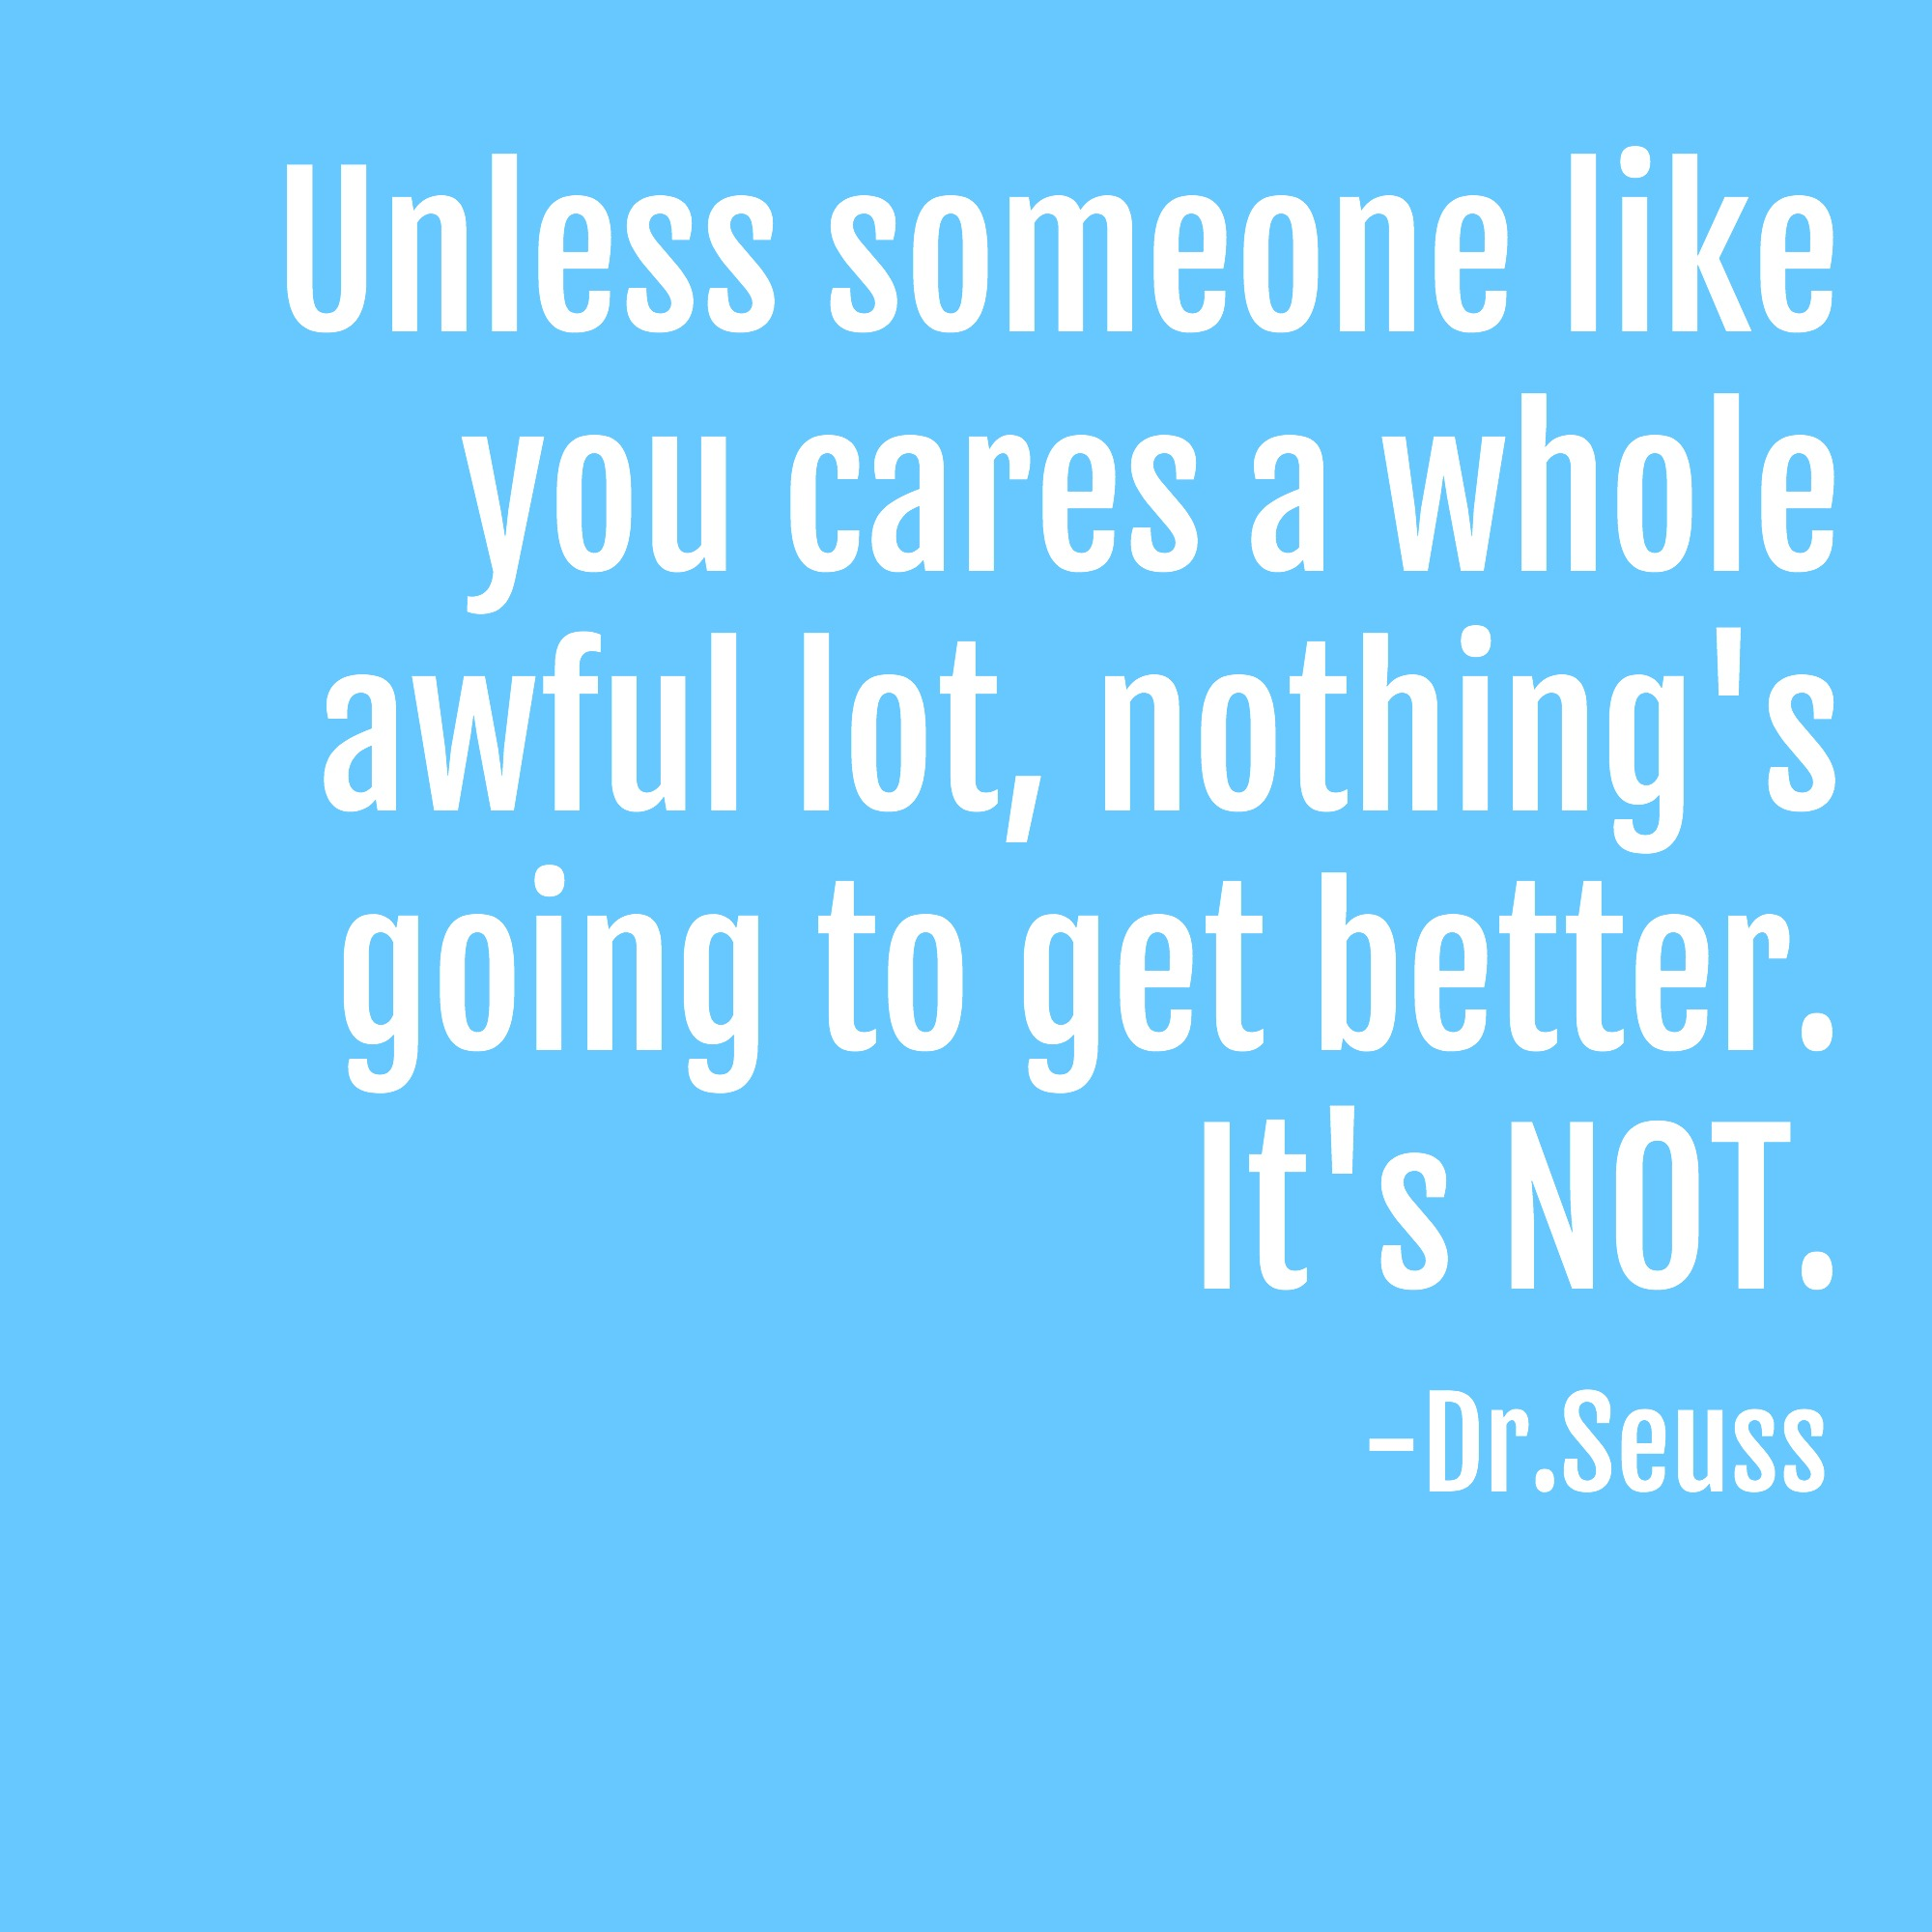 Dr Seuss Quotes Kid: Dr. Seuss Quotes For Kids